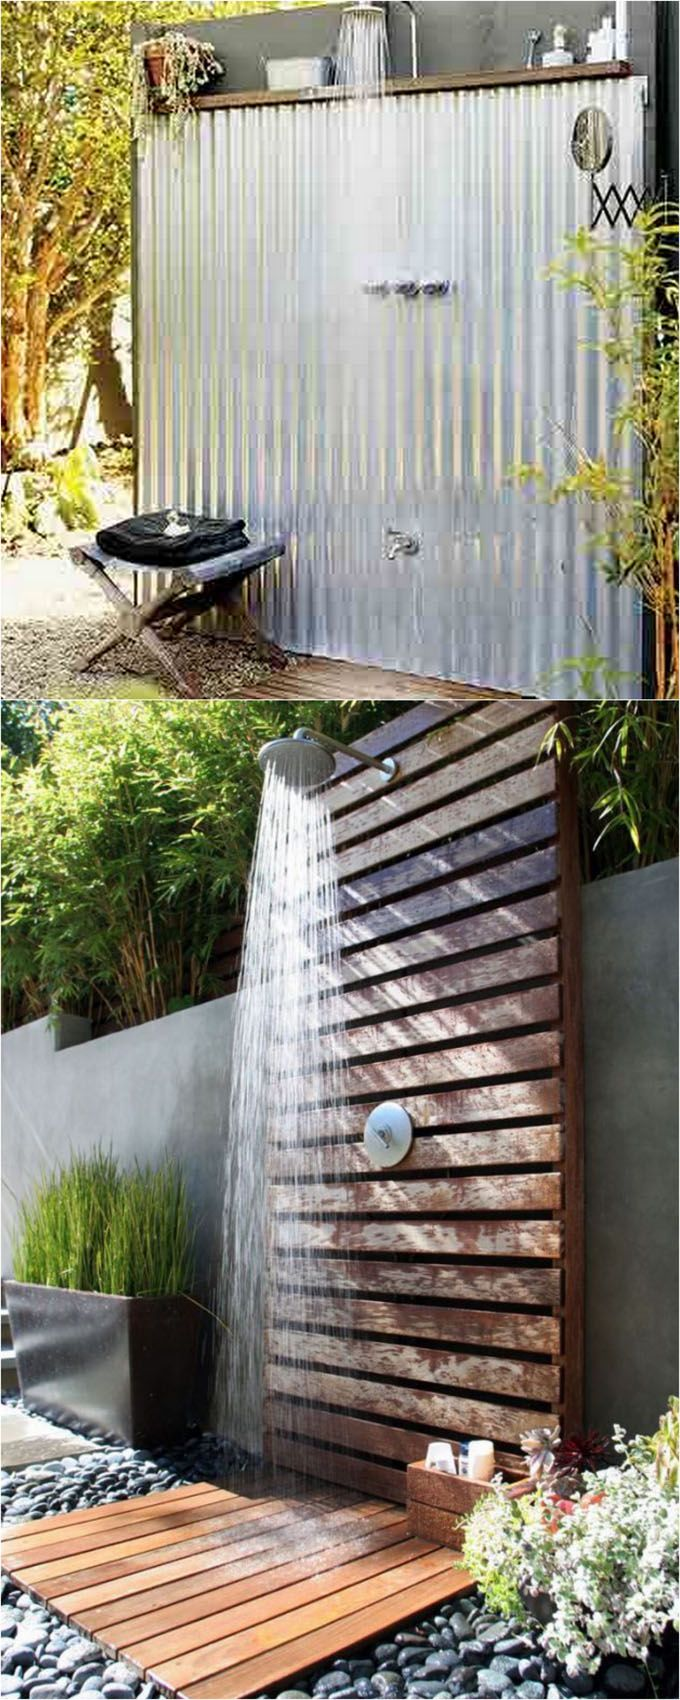 Nice Simple Outdoor Shower Ideas Part - 9: 32 Inspiring DIY Outdoor Showers: Lots Of Ideas On How To Build Enclosures  With Simple